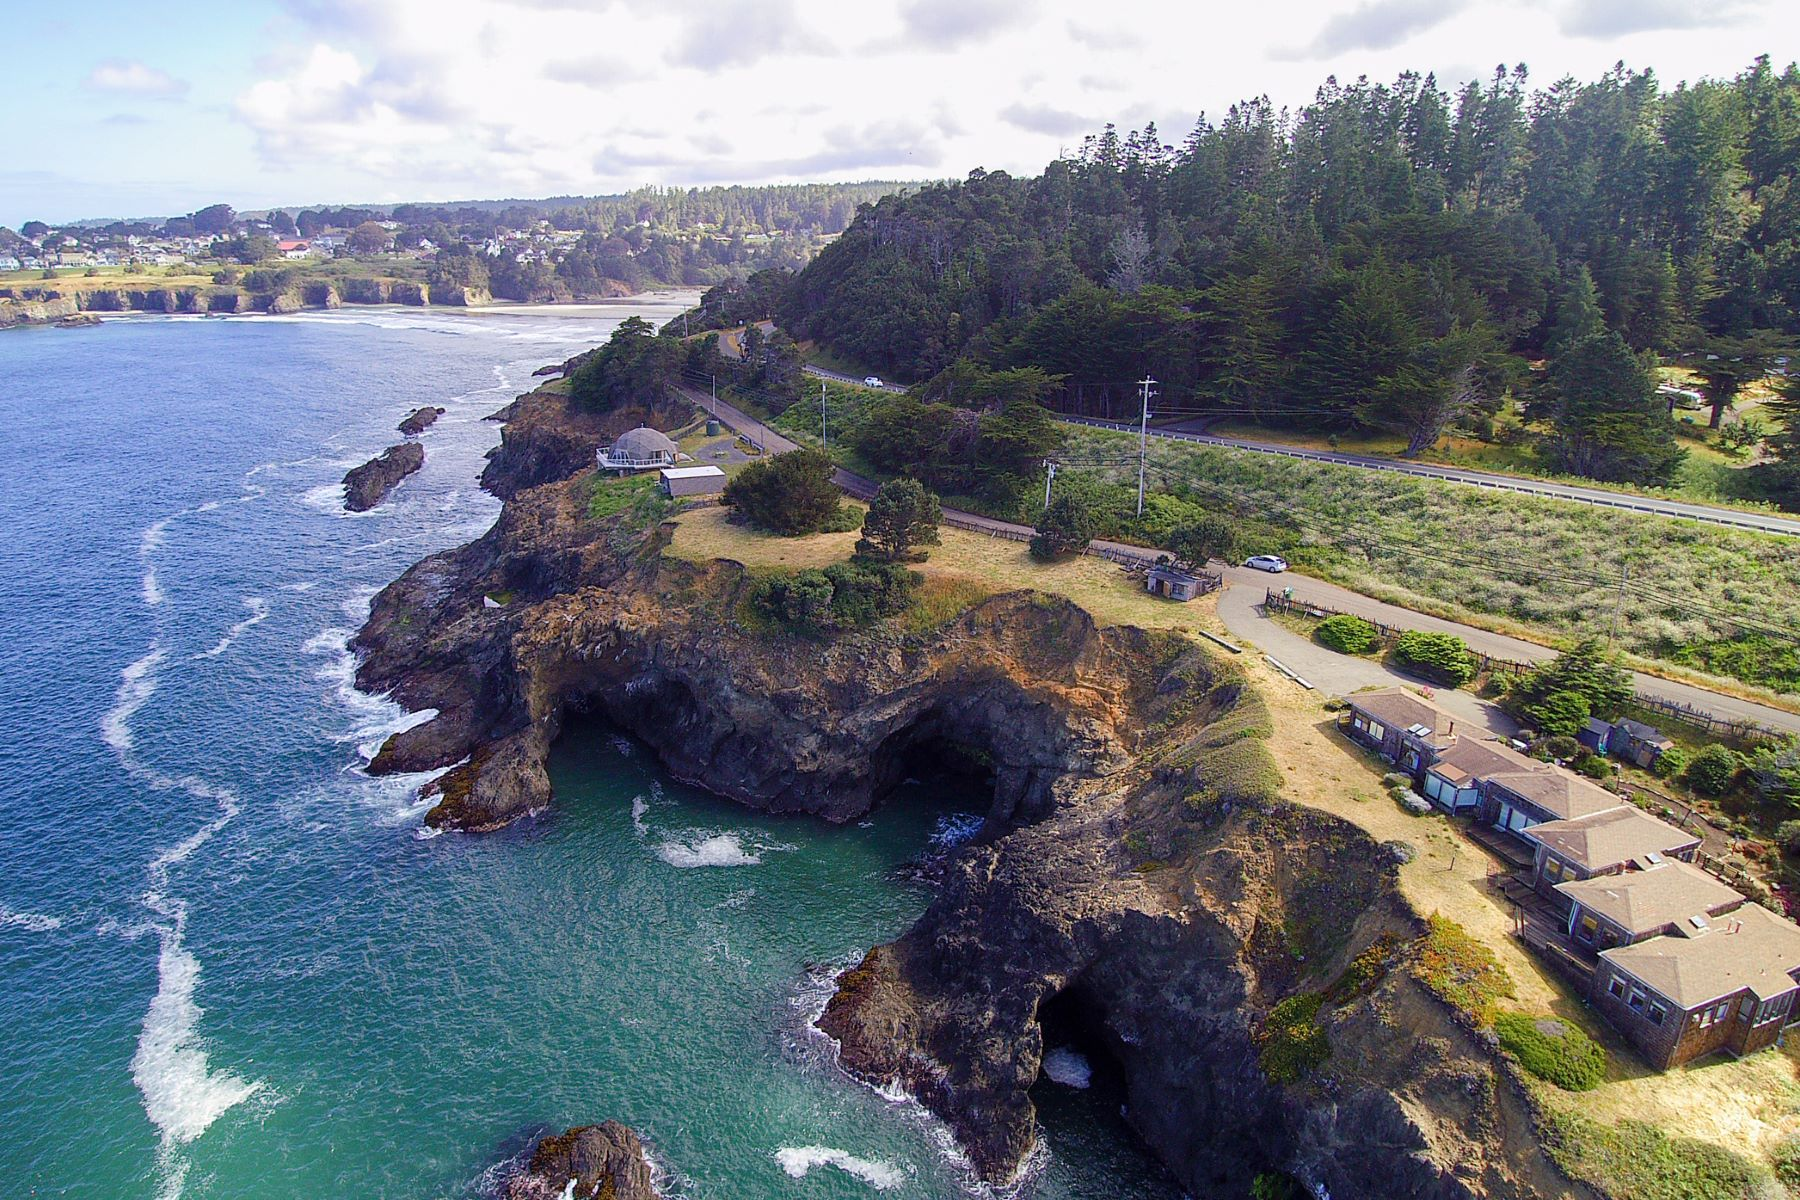 Single Family Home for Sale at Iconic Views of Mendocino 9600 N Hwy One Mendocino, California 95460 United States